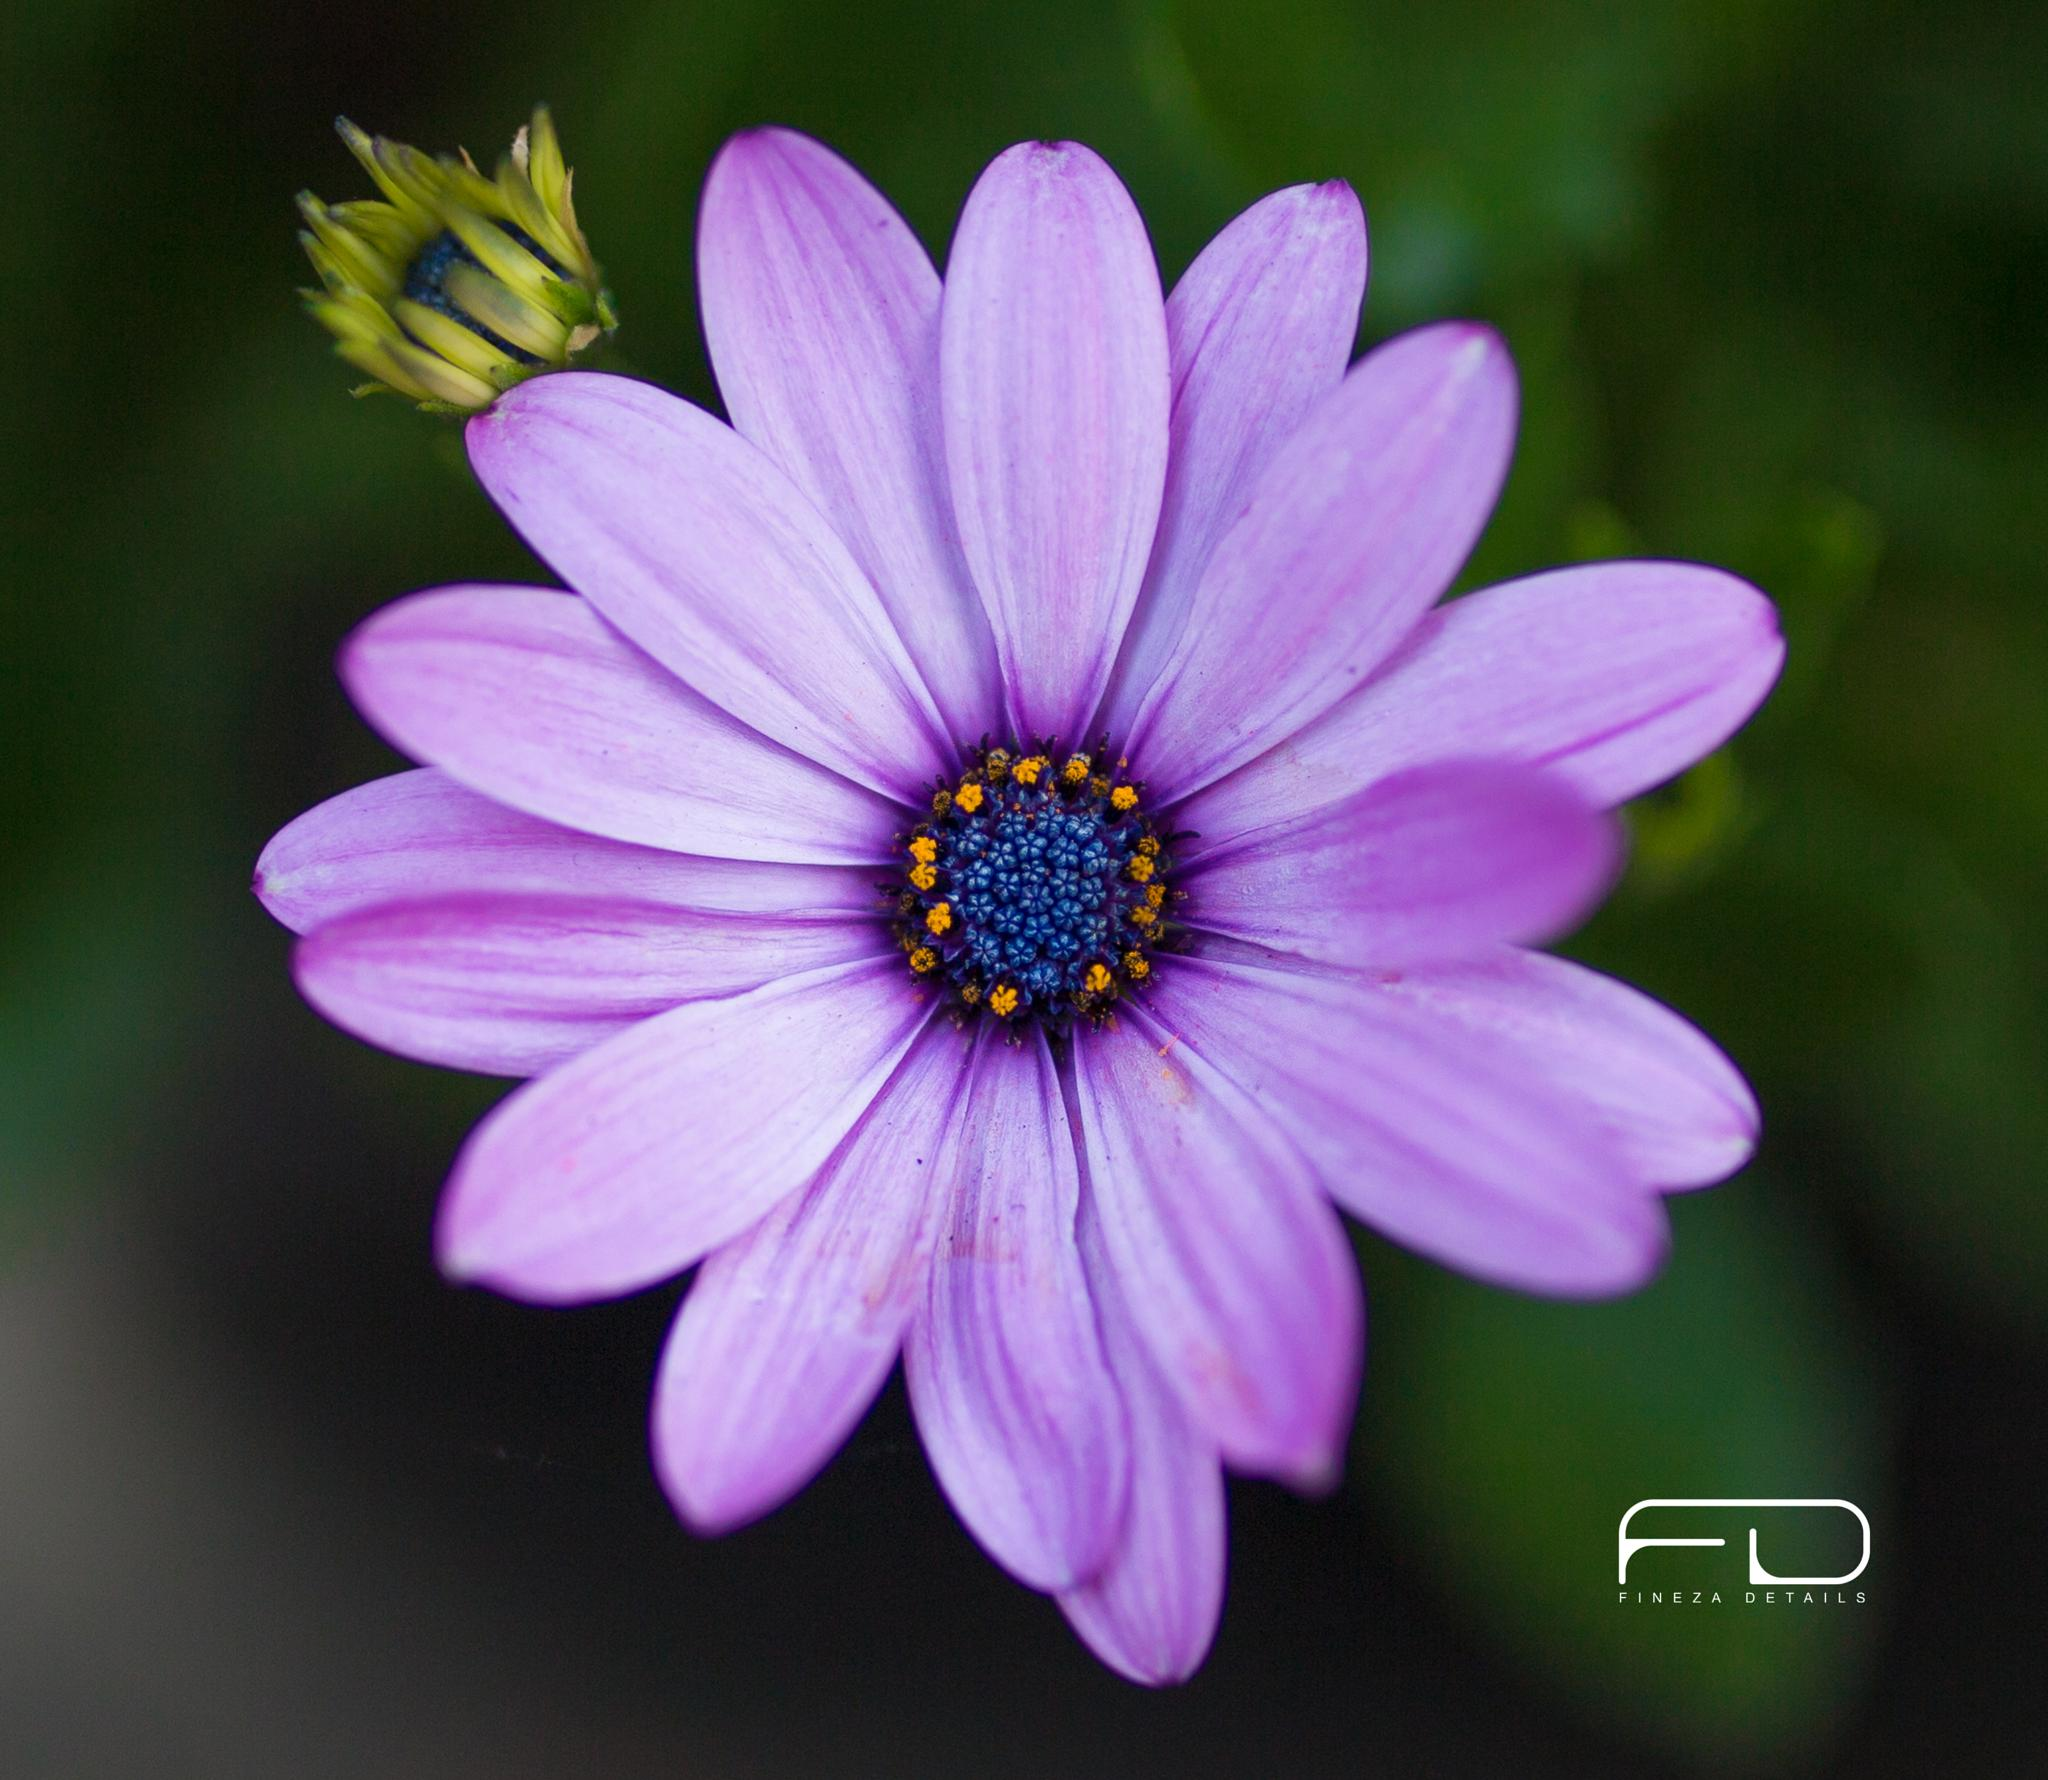 Flower by Khalid_Fineza  Details